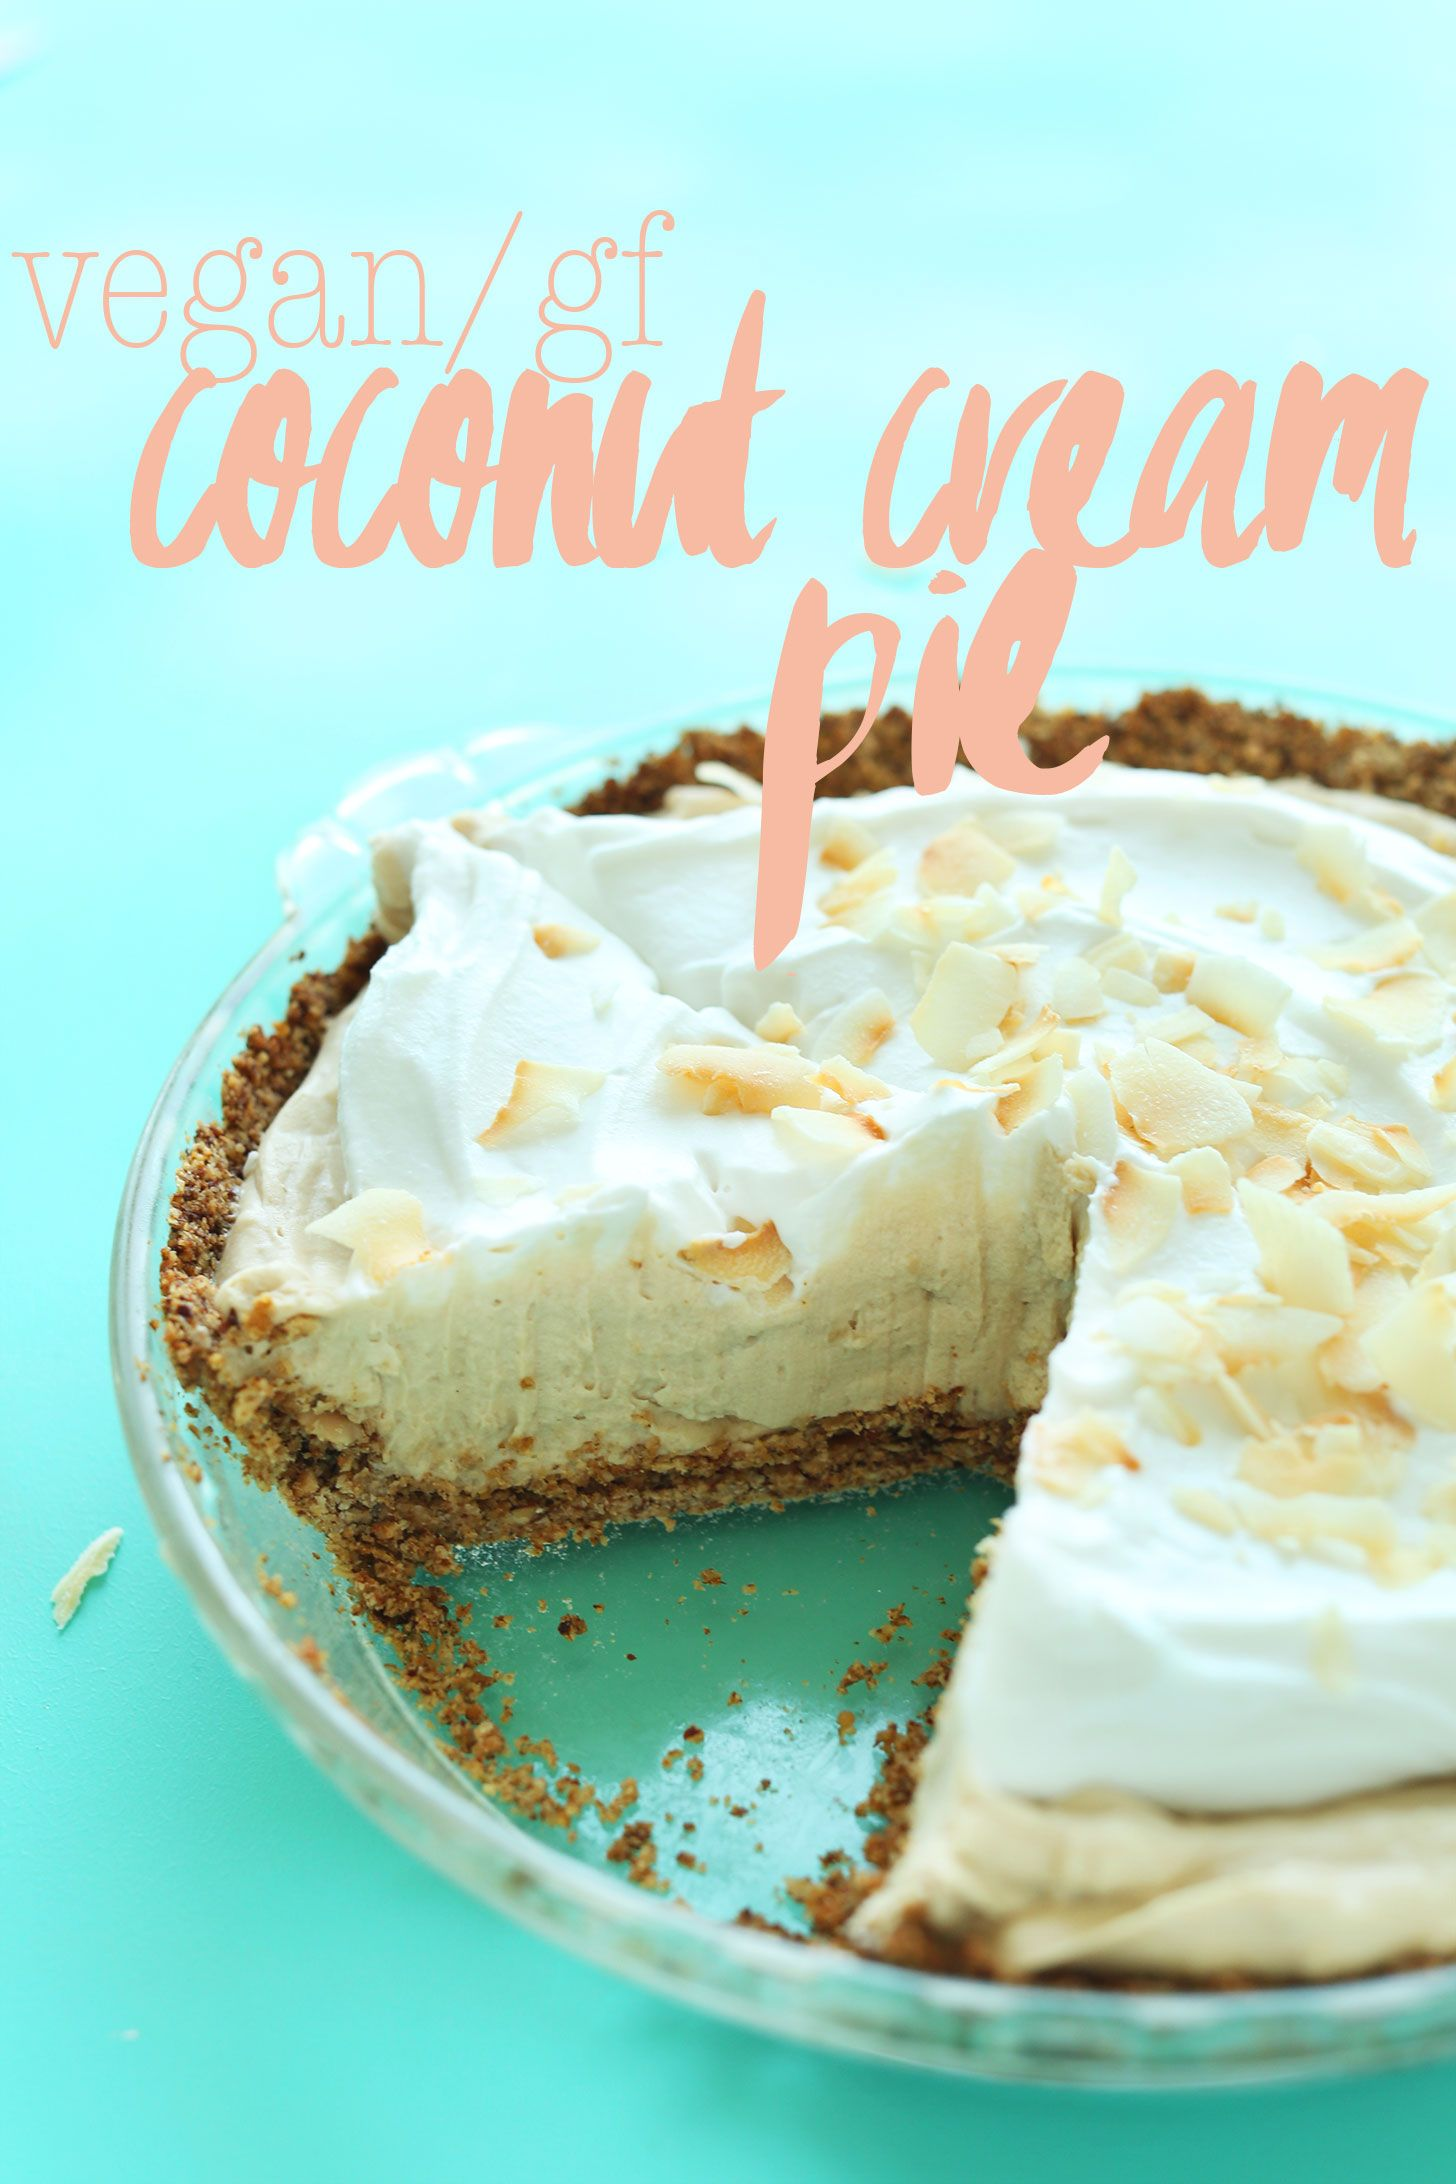 Coconut Cream Pie Minimalist Baker Recipes Recipe Coconut Cream Pie Easy Coconut Cream Pie Desserts